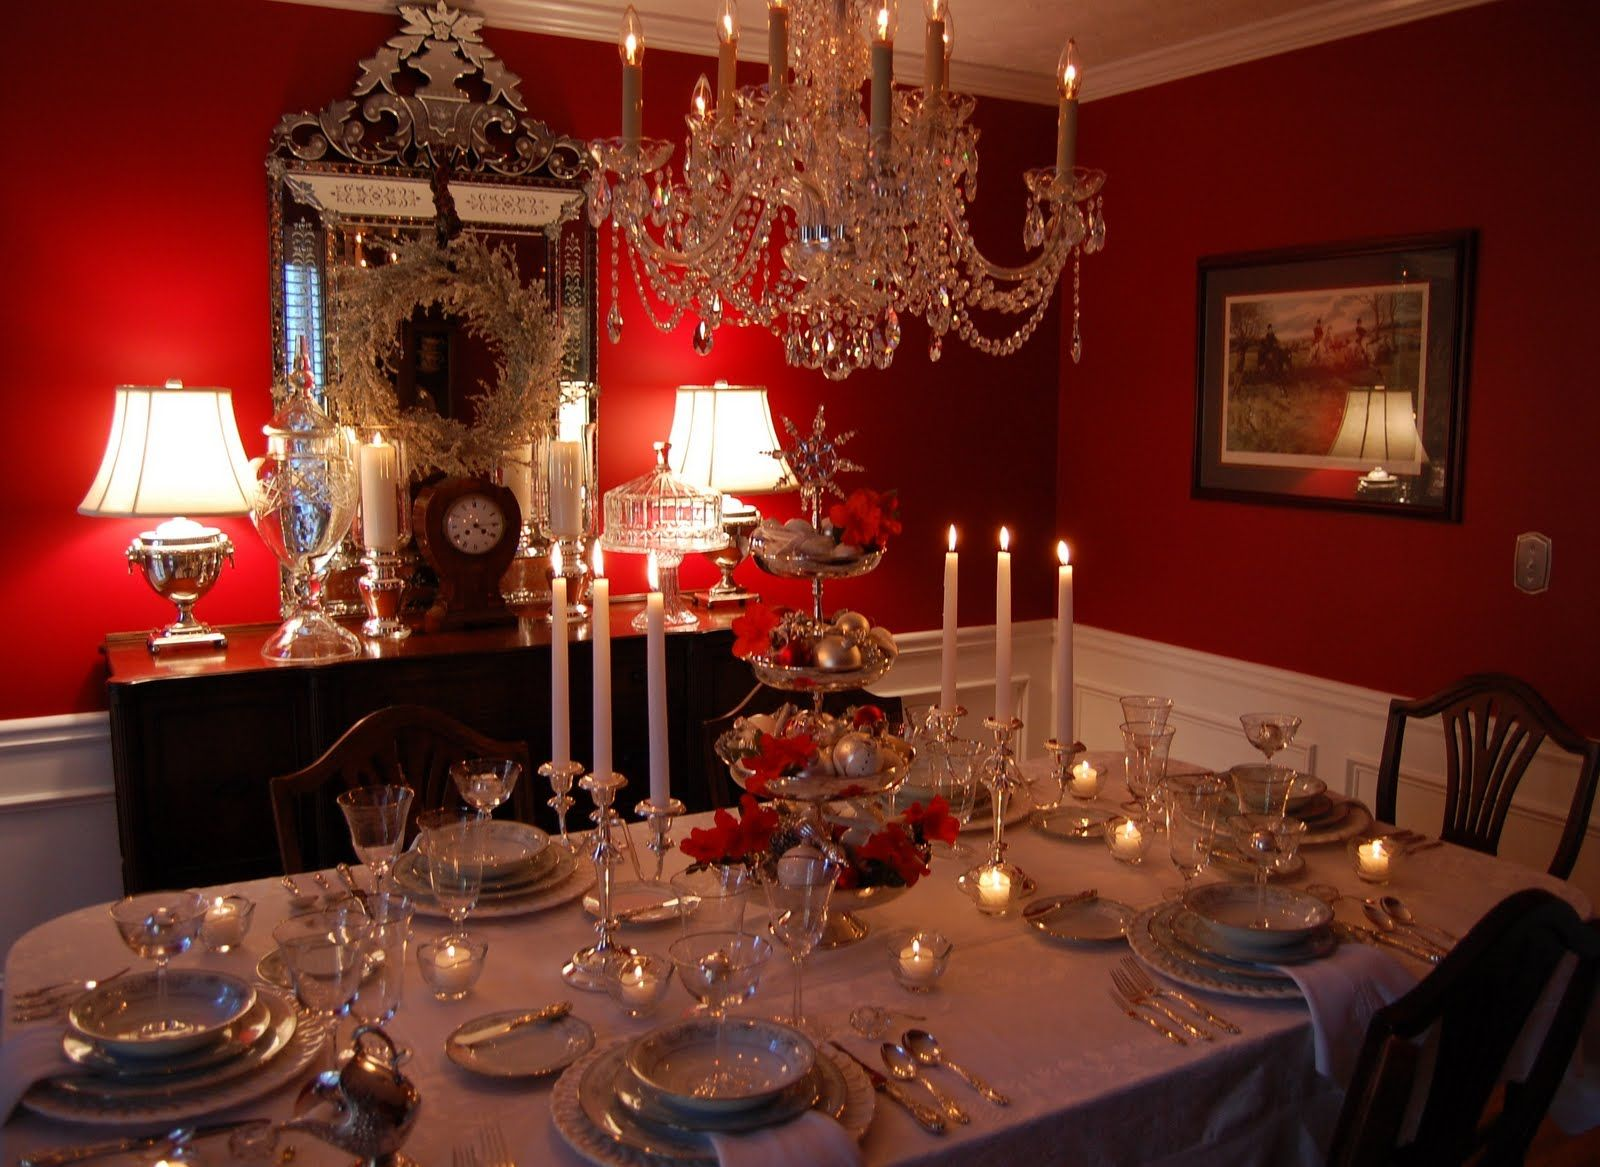 Dining Room Elegant Christmas Tables Centerpiece Decoration Ideas Tablescape Table Setting With Silver Tiered